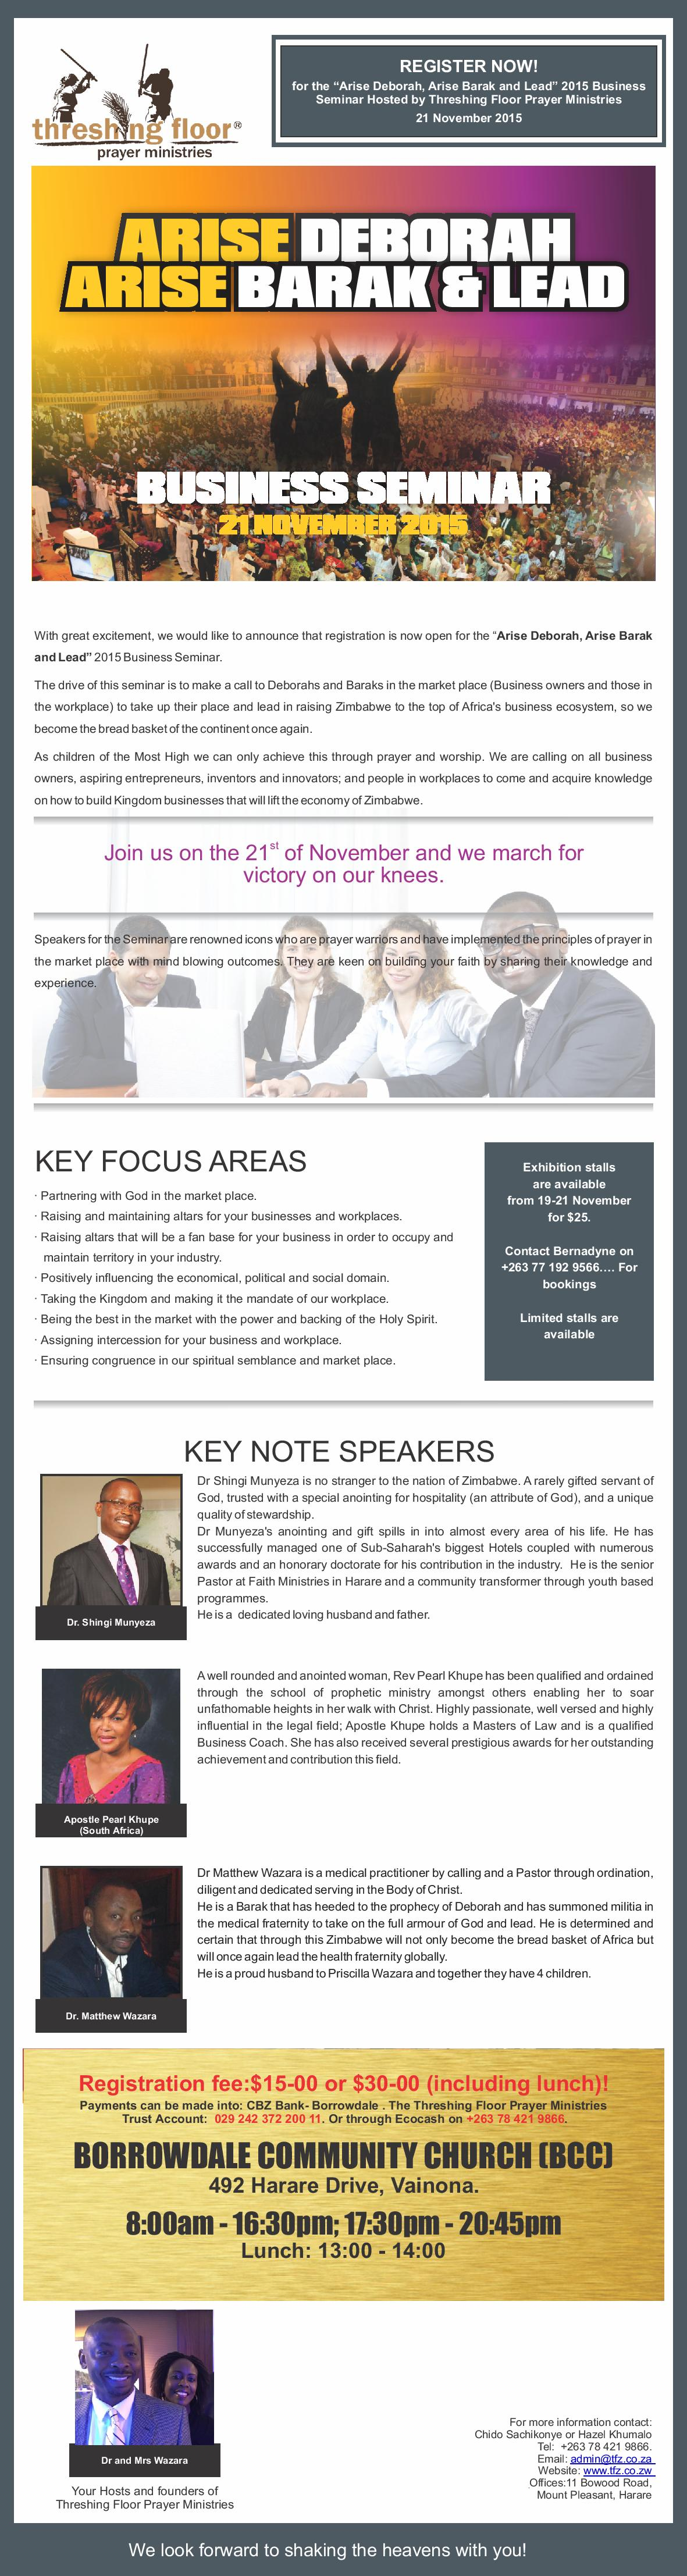 BUSINESS SEMINAR EMAIL NEWSLETTER-page-001